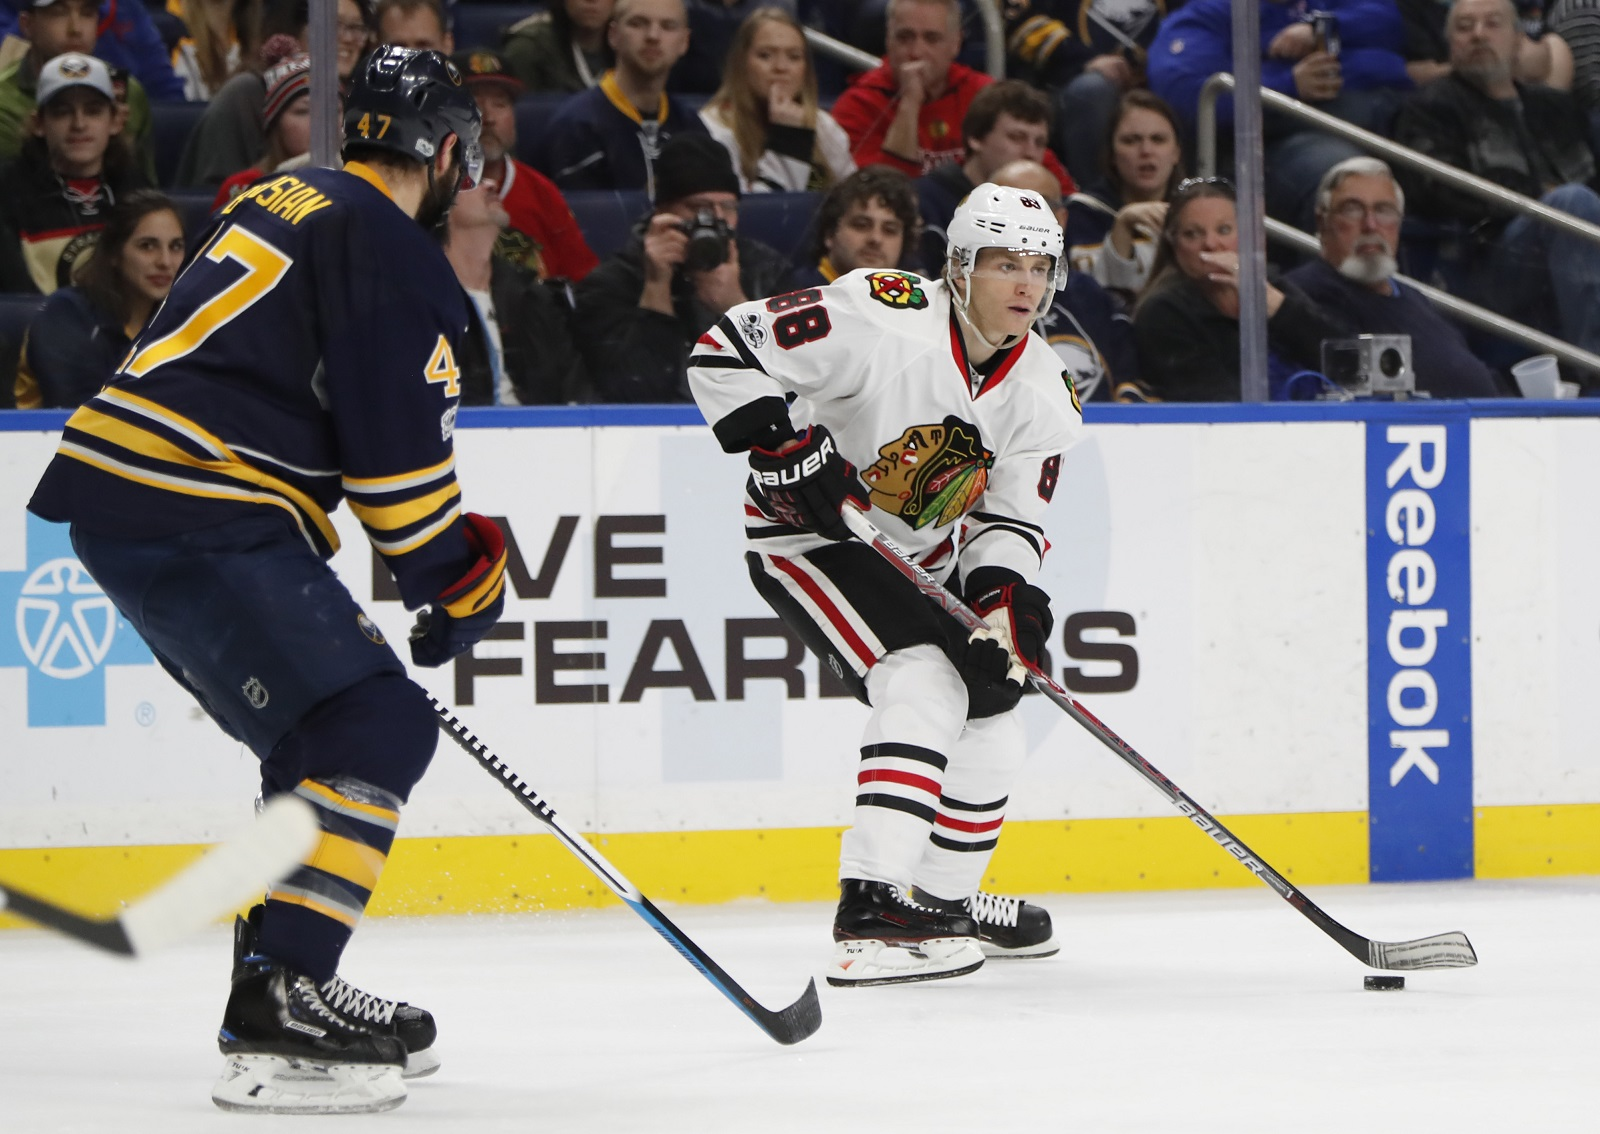 Chicago Blackhawks Patrick Kane skates with the puck against the Buffalo Sabres during second period action at the Keybank Center on Sunday (Harry Scull Jr./Buffalo News)